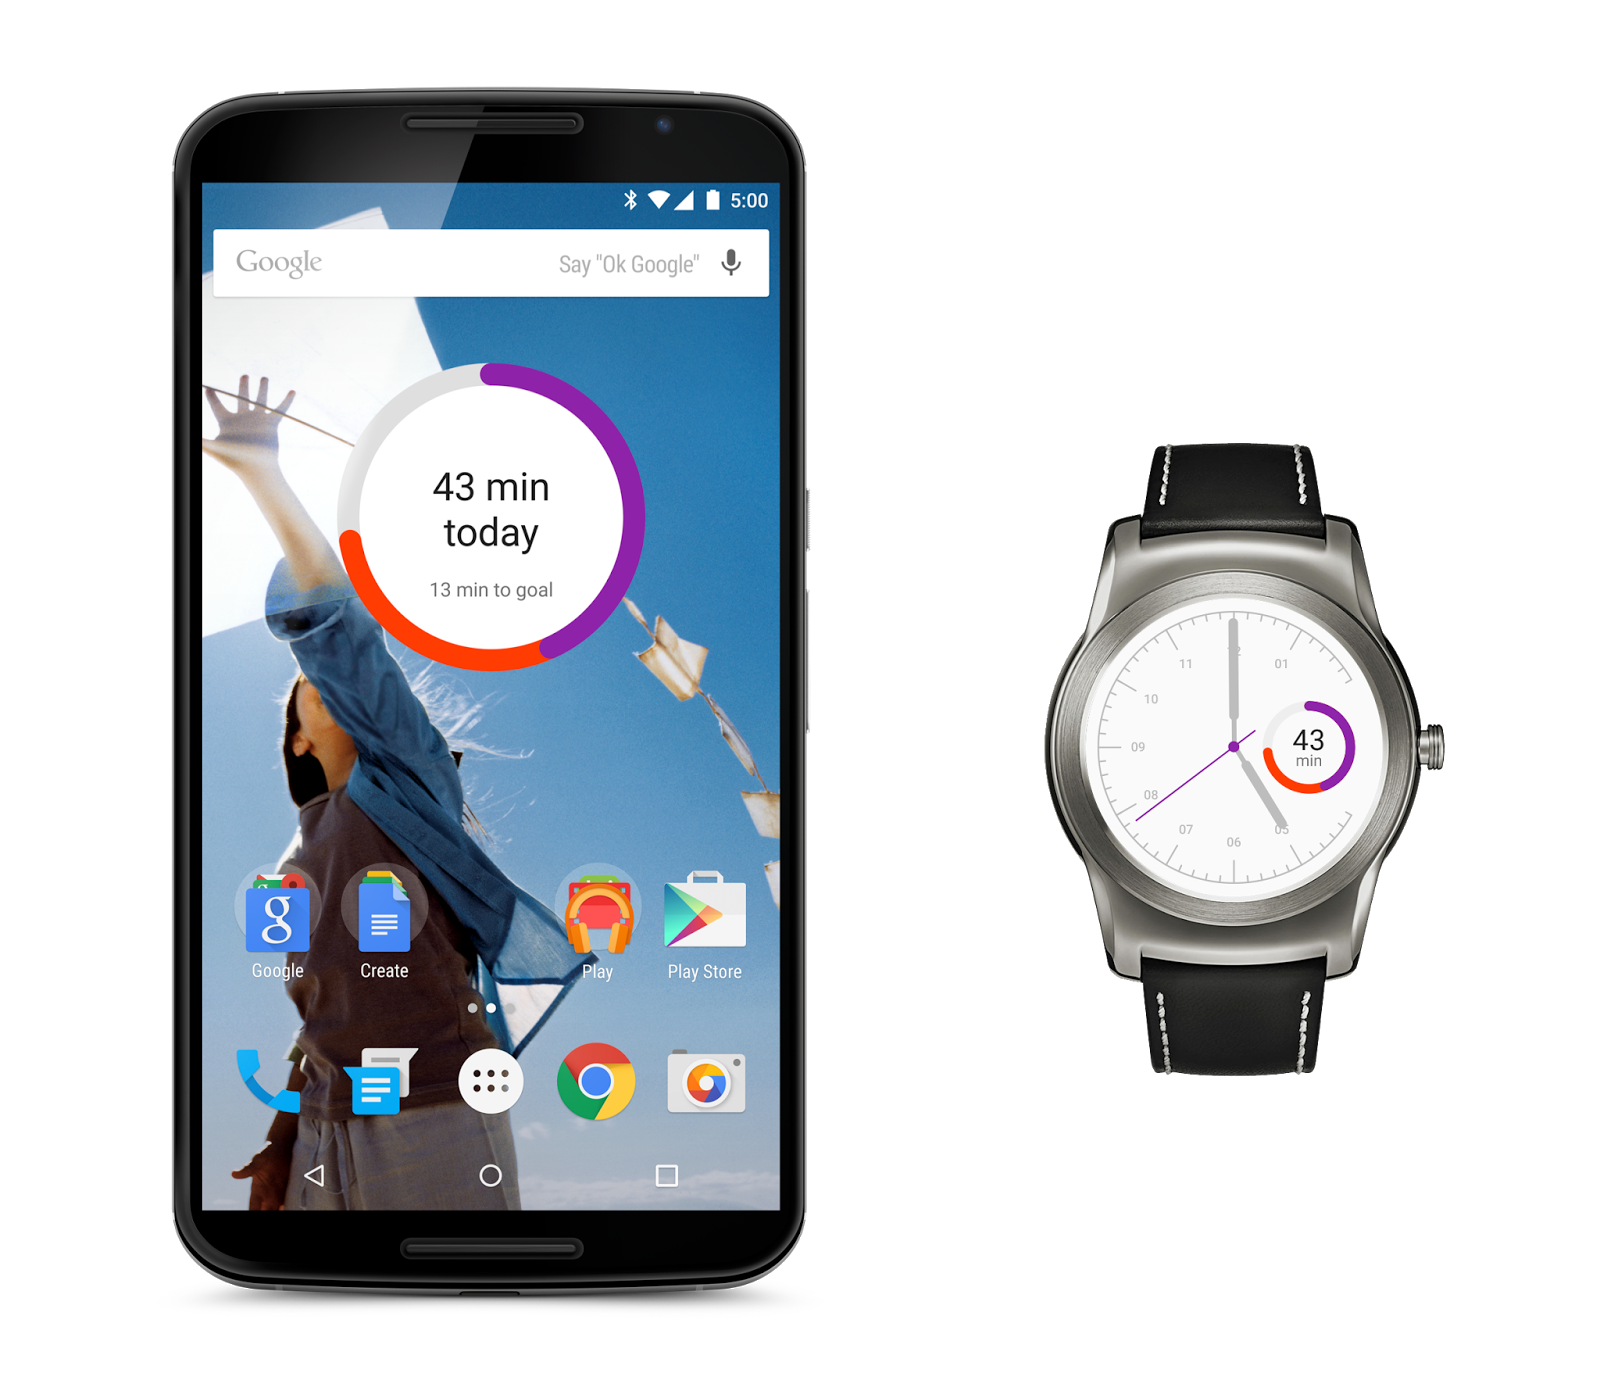 Google Fit Updated To Track Calories, Distance, Metabolic Rate